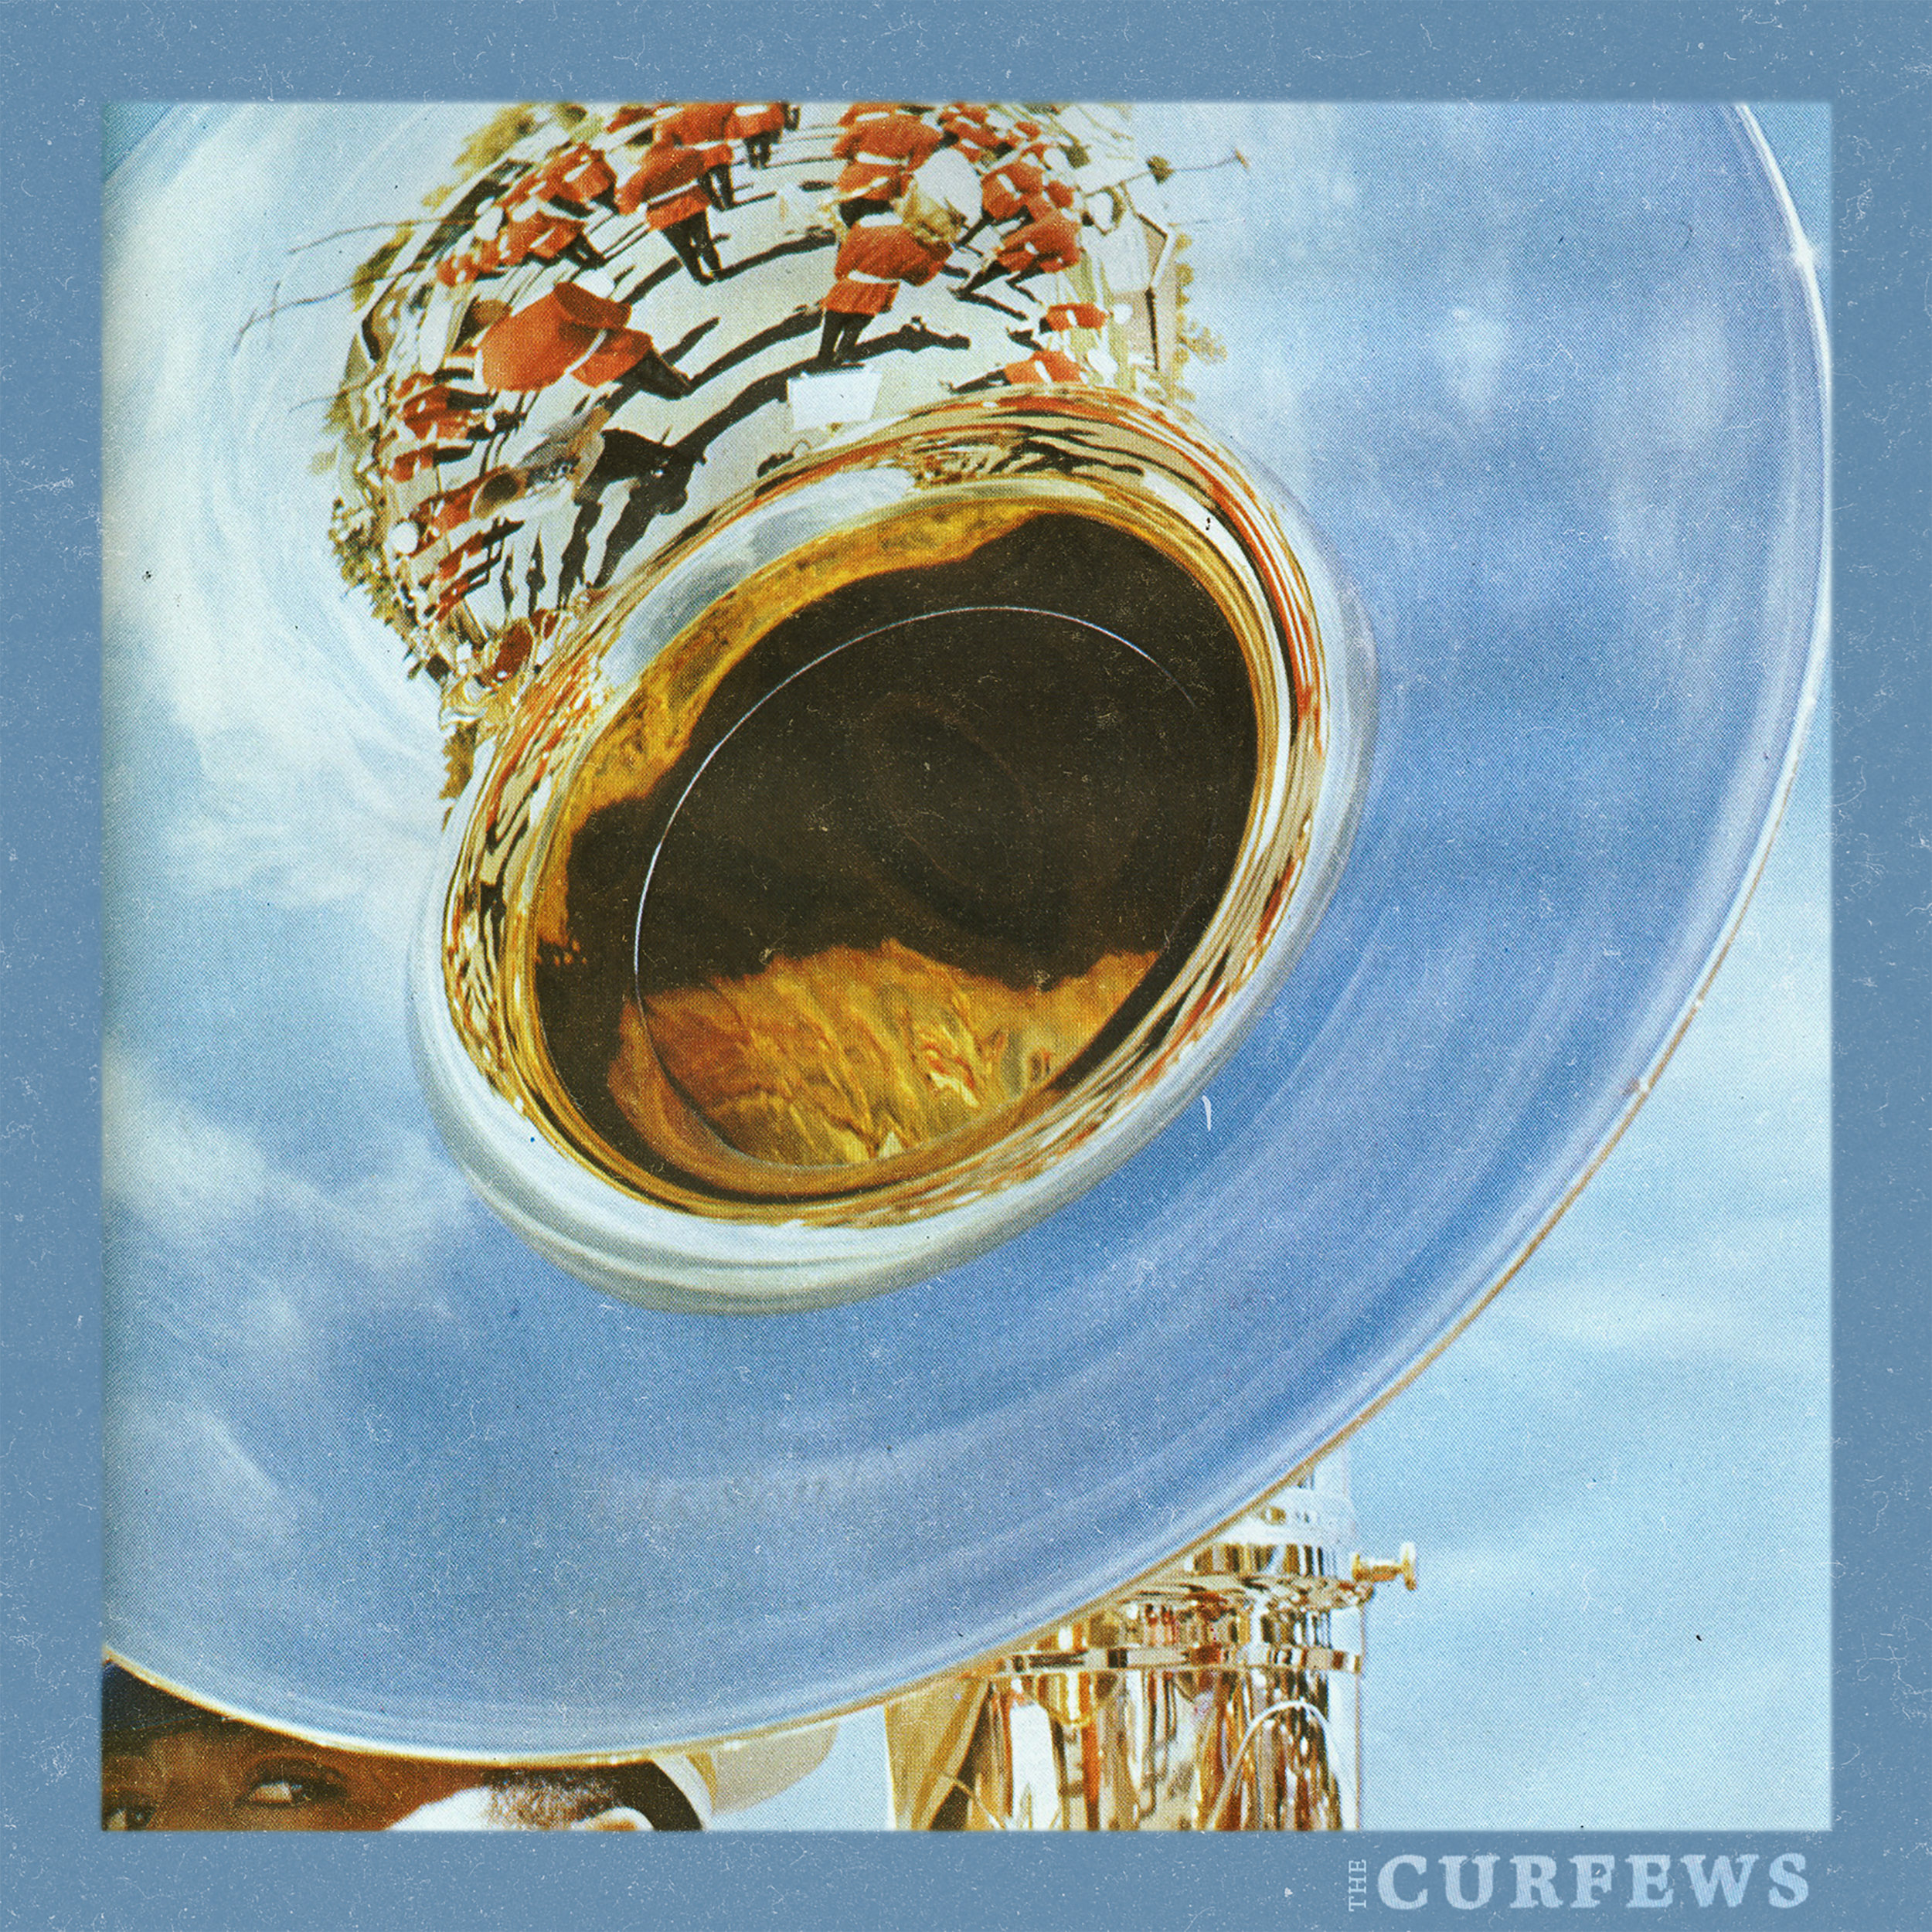 curfews_cover 2.jpg